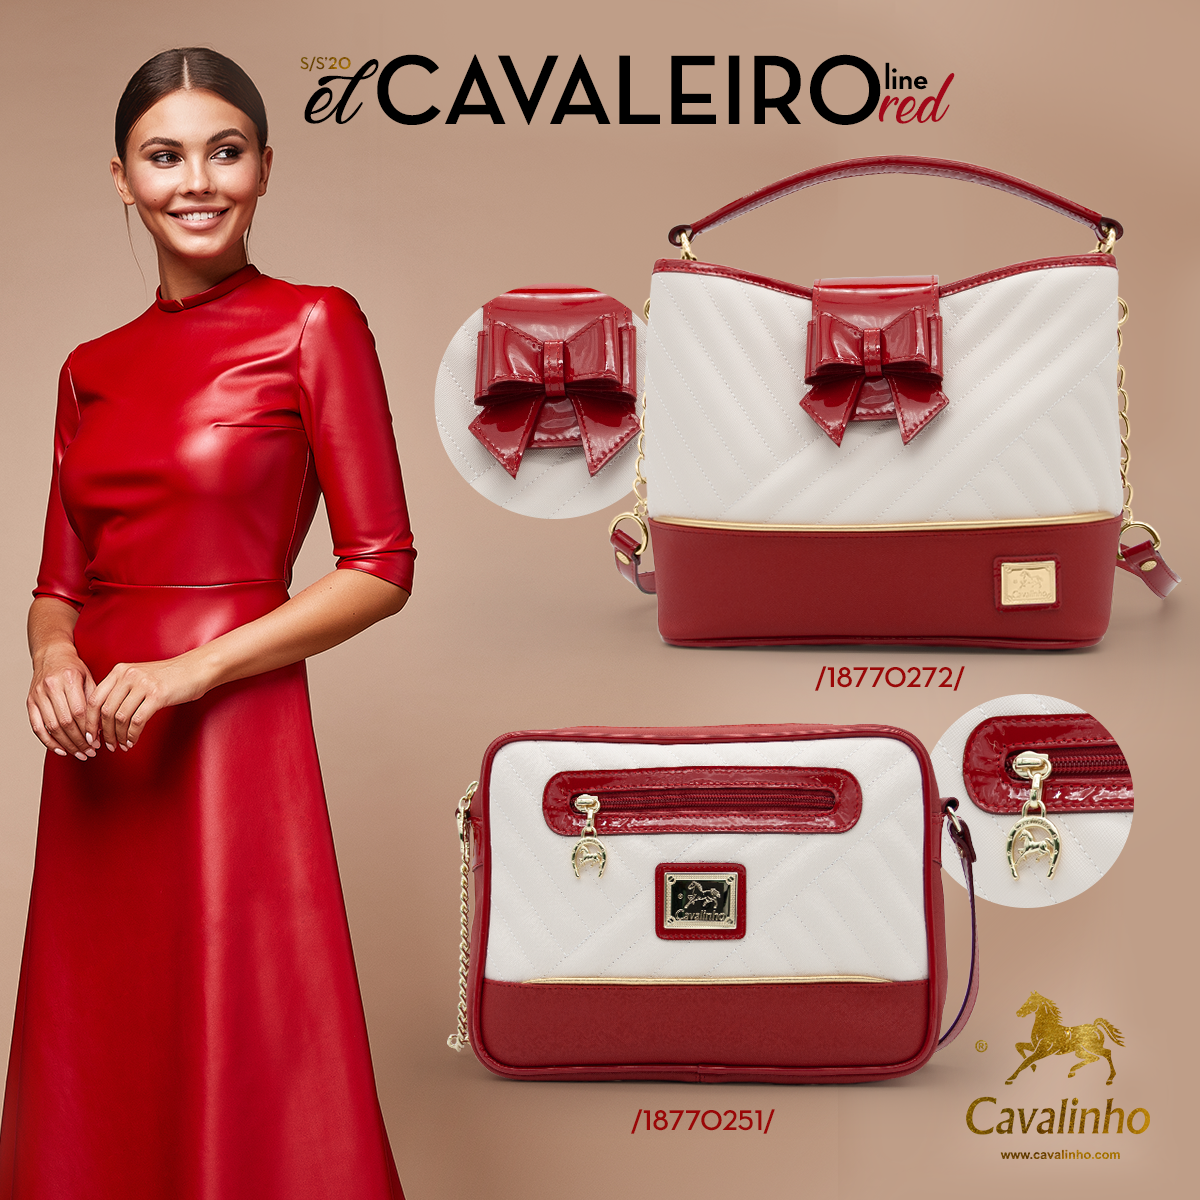 elcavaleiro_red_03